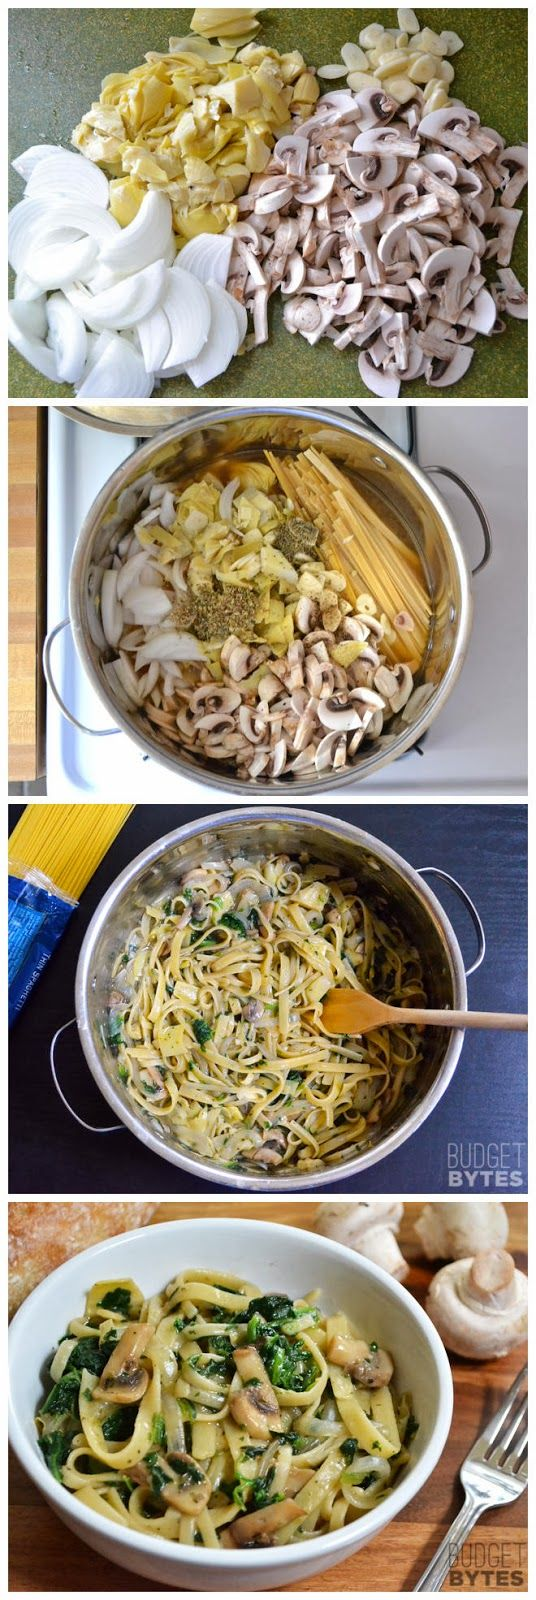 This is your #10 Top Pin in November: Spinach & Artichoke Wonderpot - 147 re-pins! (You voted with yor re-pins). Congratulations @Trina Lee !